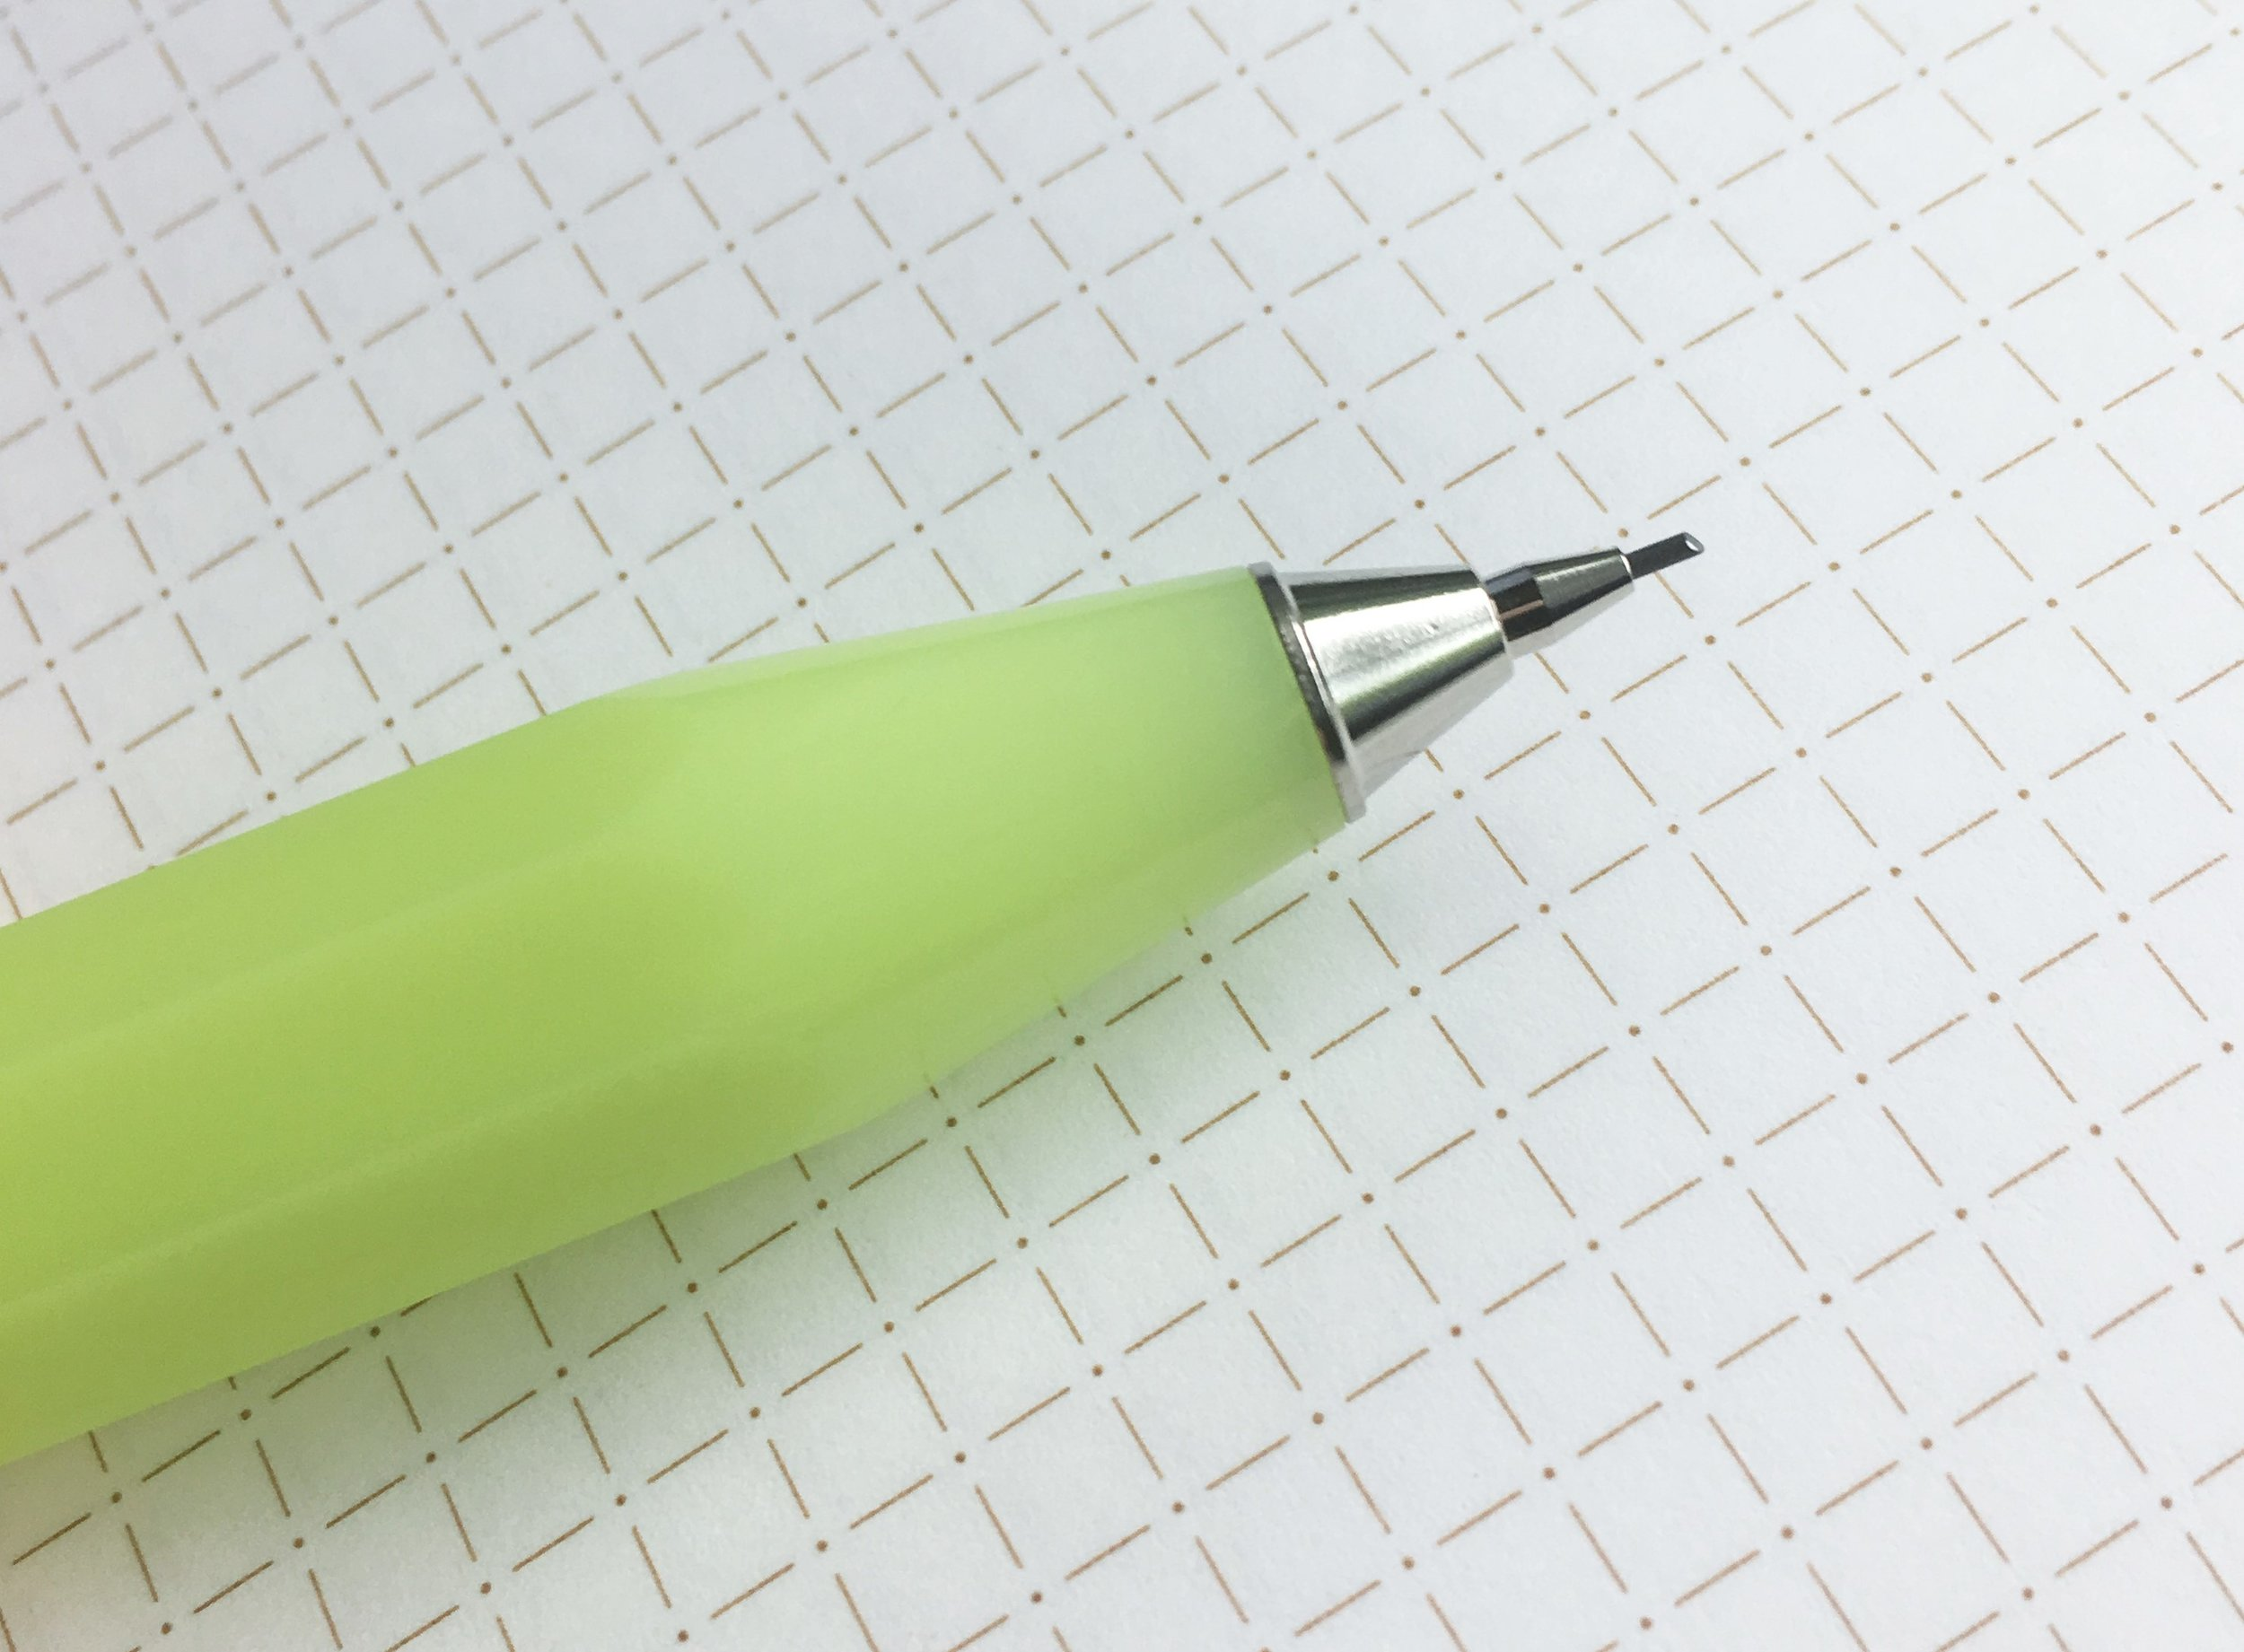 Kaweco Frosted Sport Mechanical Pencil